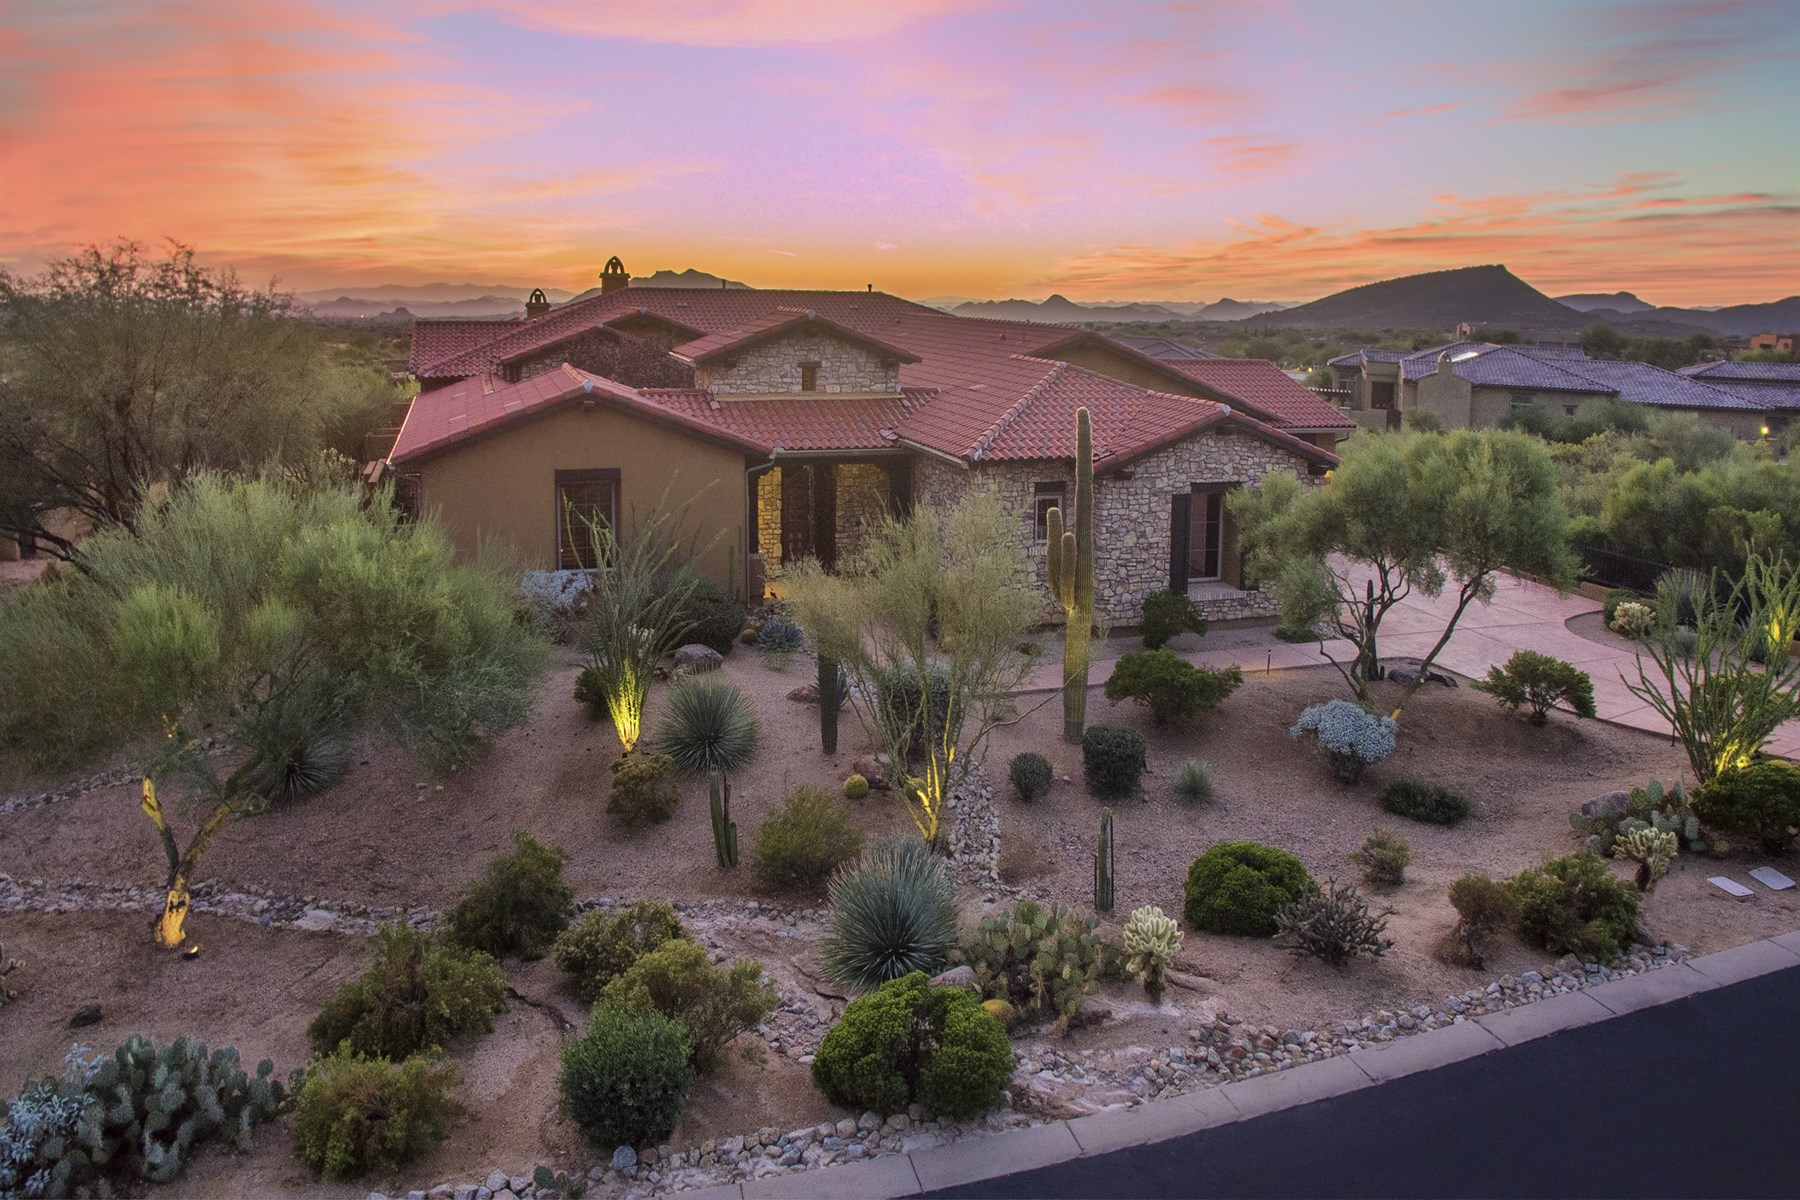 Single Family Home for Sale at Luxury custom home perched high above the Sonoran Desert 38348 N 108th Street Scottsdale, Arizona, 85262 United States